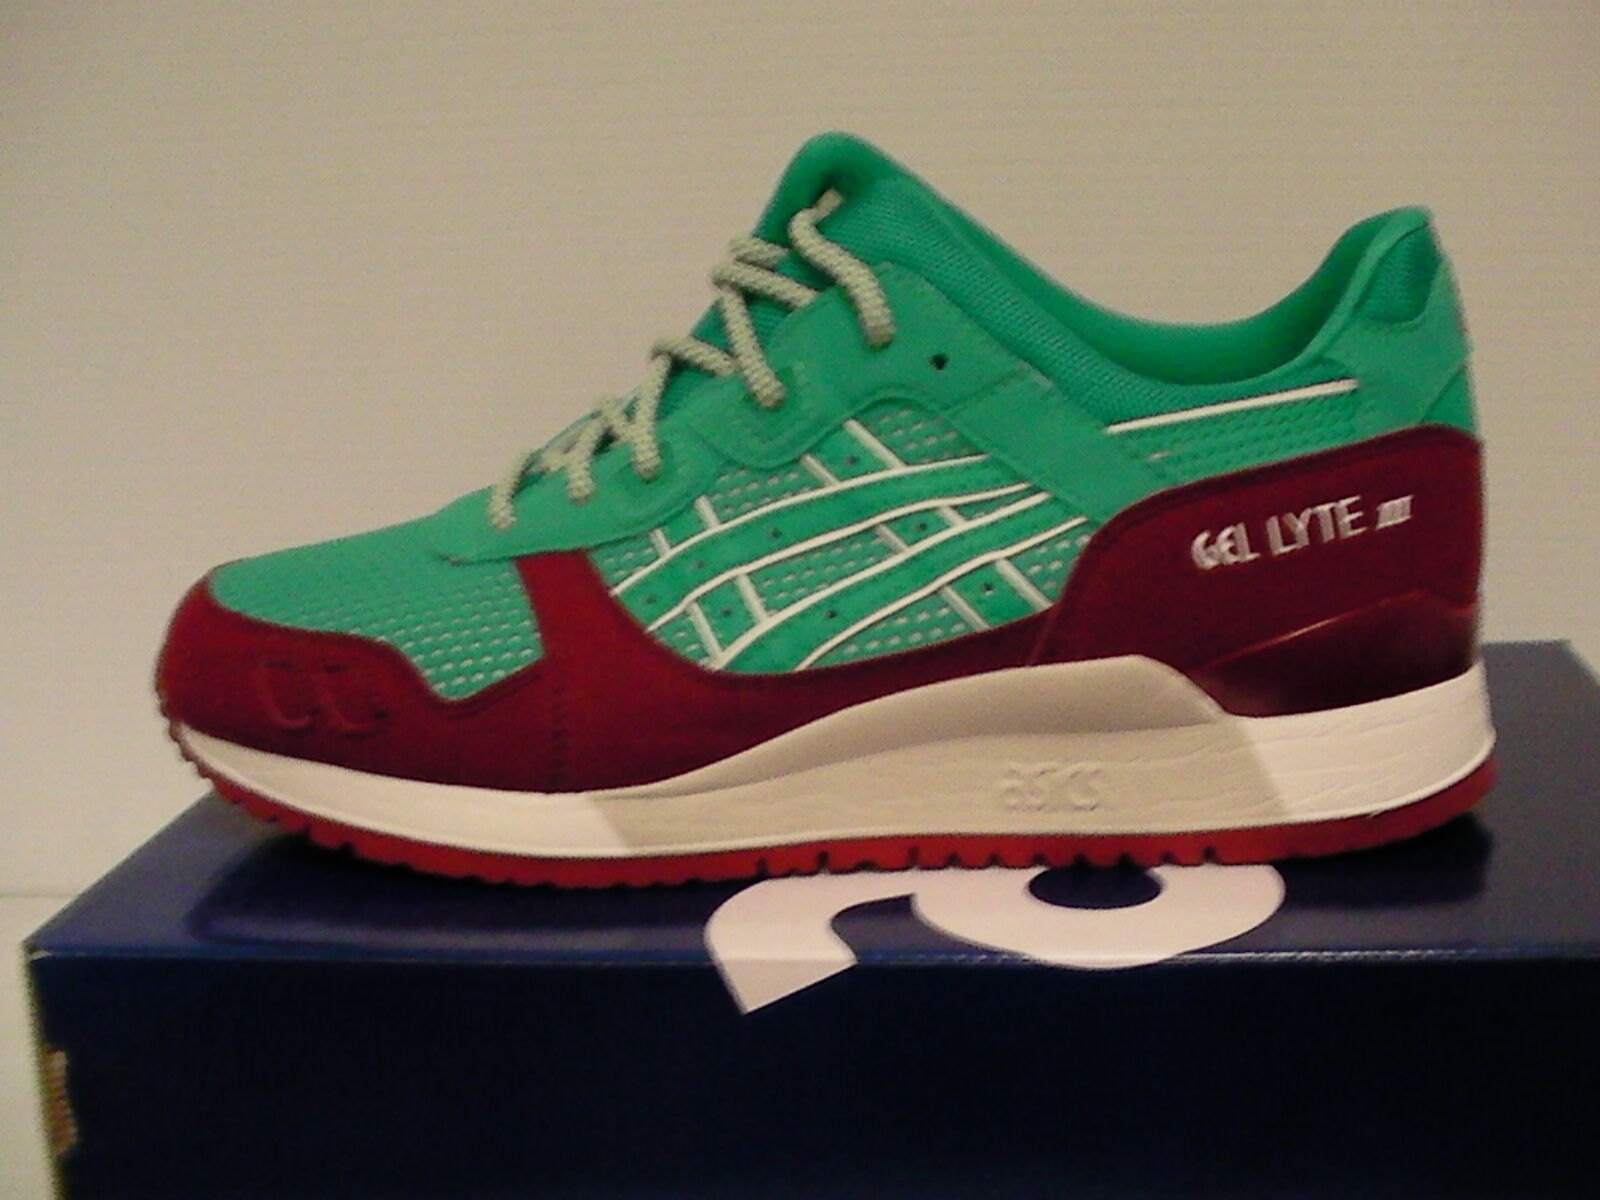 Asics men running shoes gel-lyte iii size 8.5 us spectra green new with box